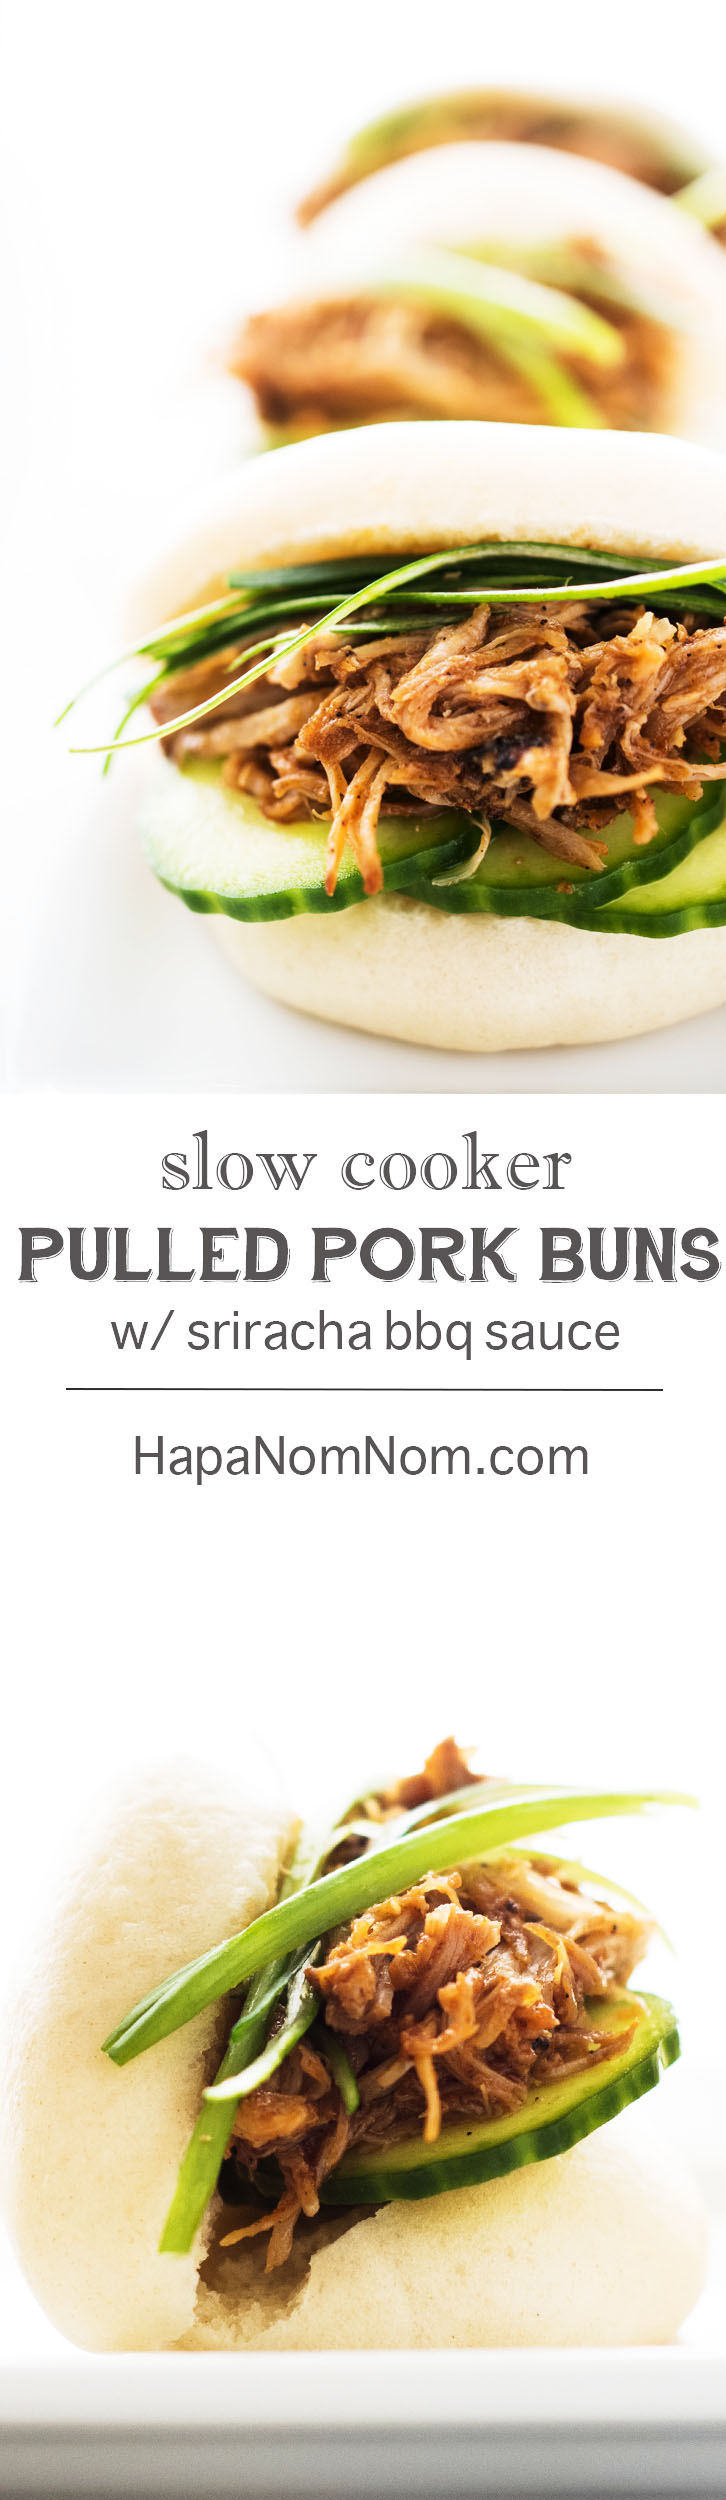 Slow-Cooker-Pulled-Pork-Buns-Pin2